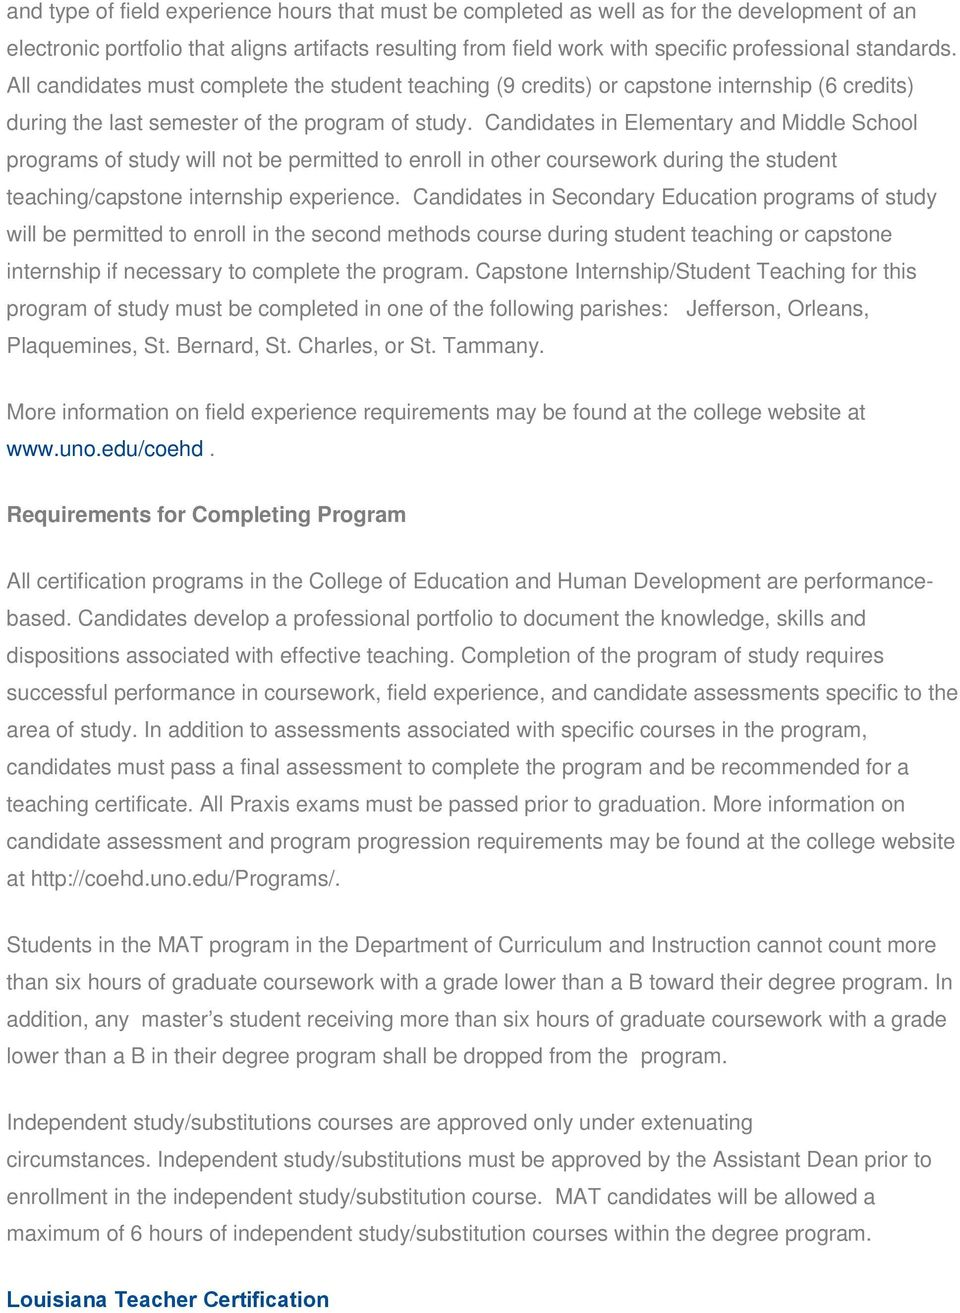 Candidates in Elementary and Middle School programs of study will not be permitted to enroll in other coursework during the student teaching/capstone internship experience.